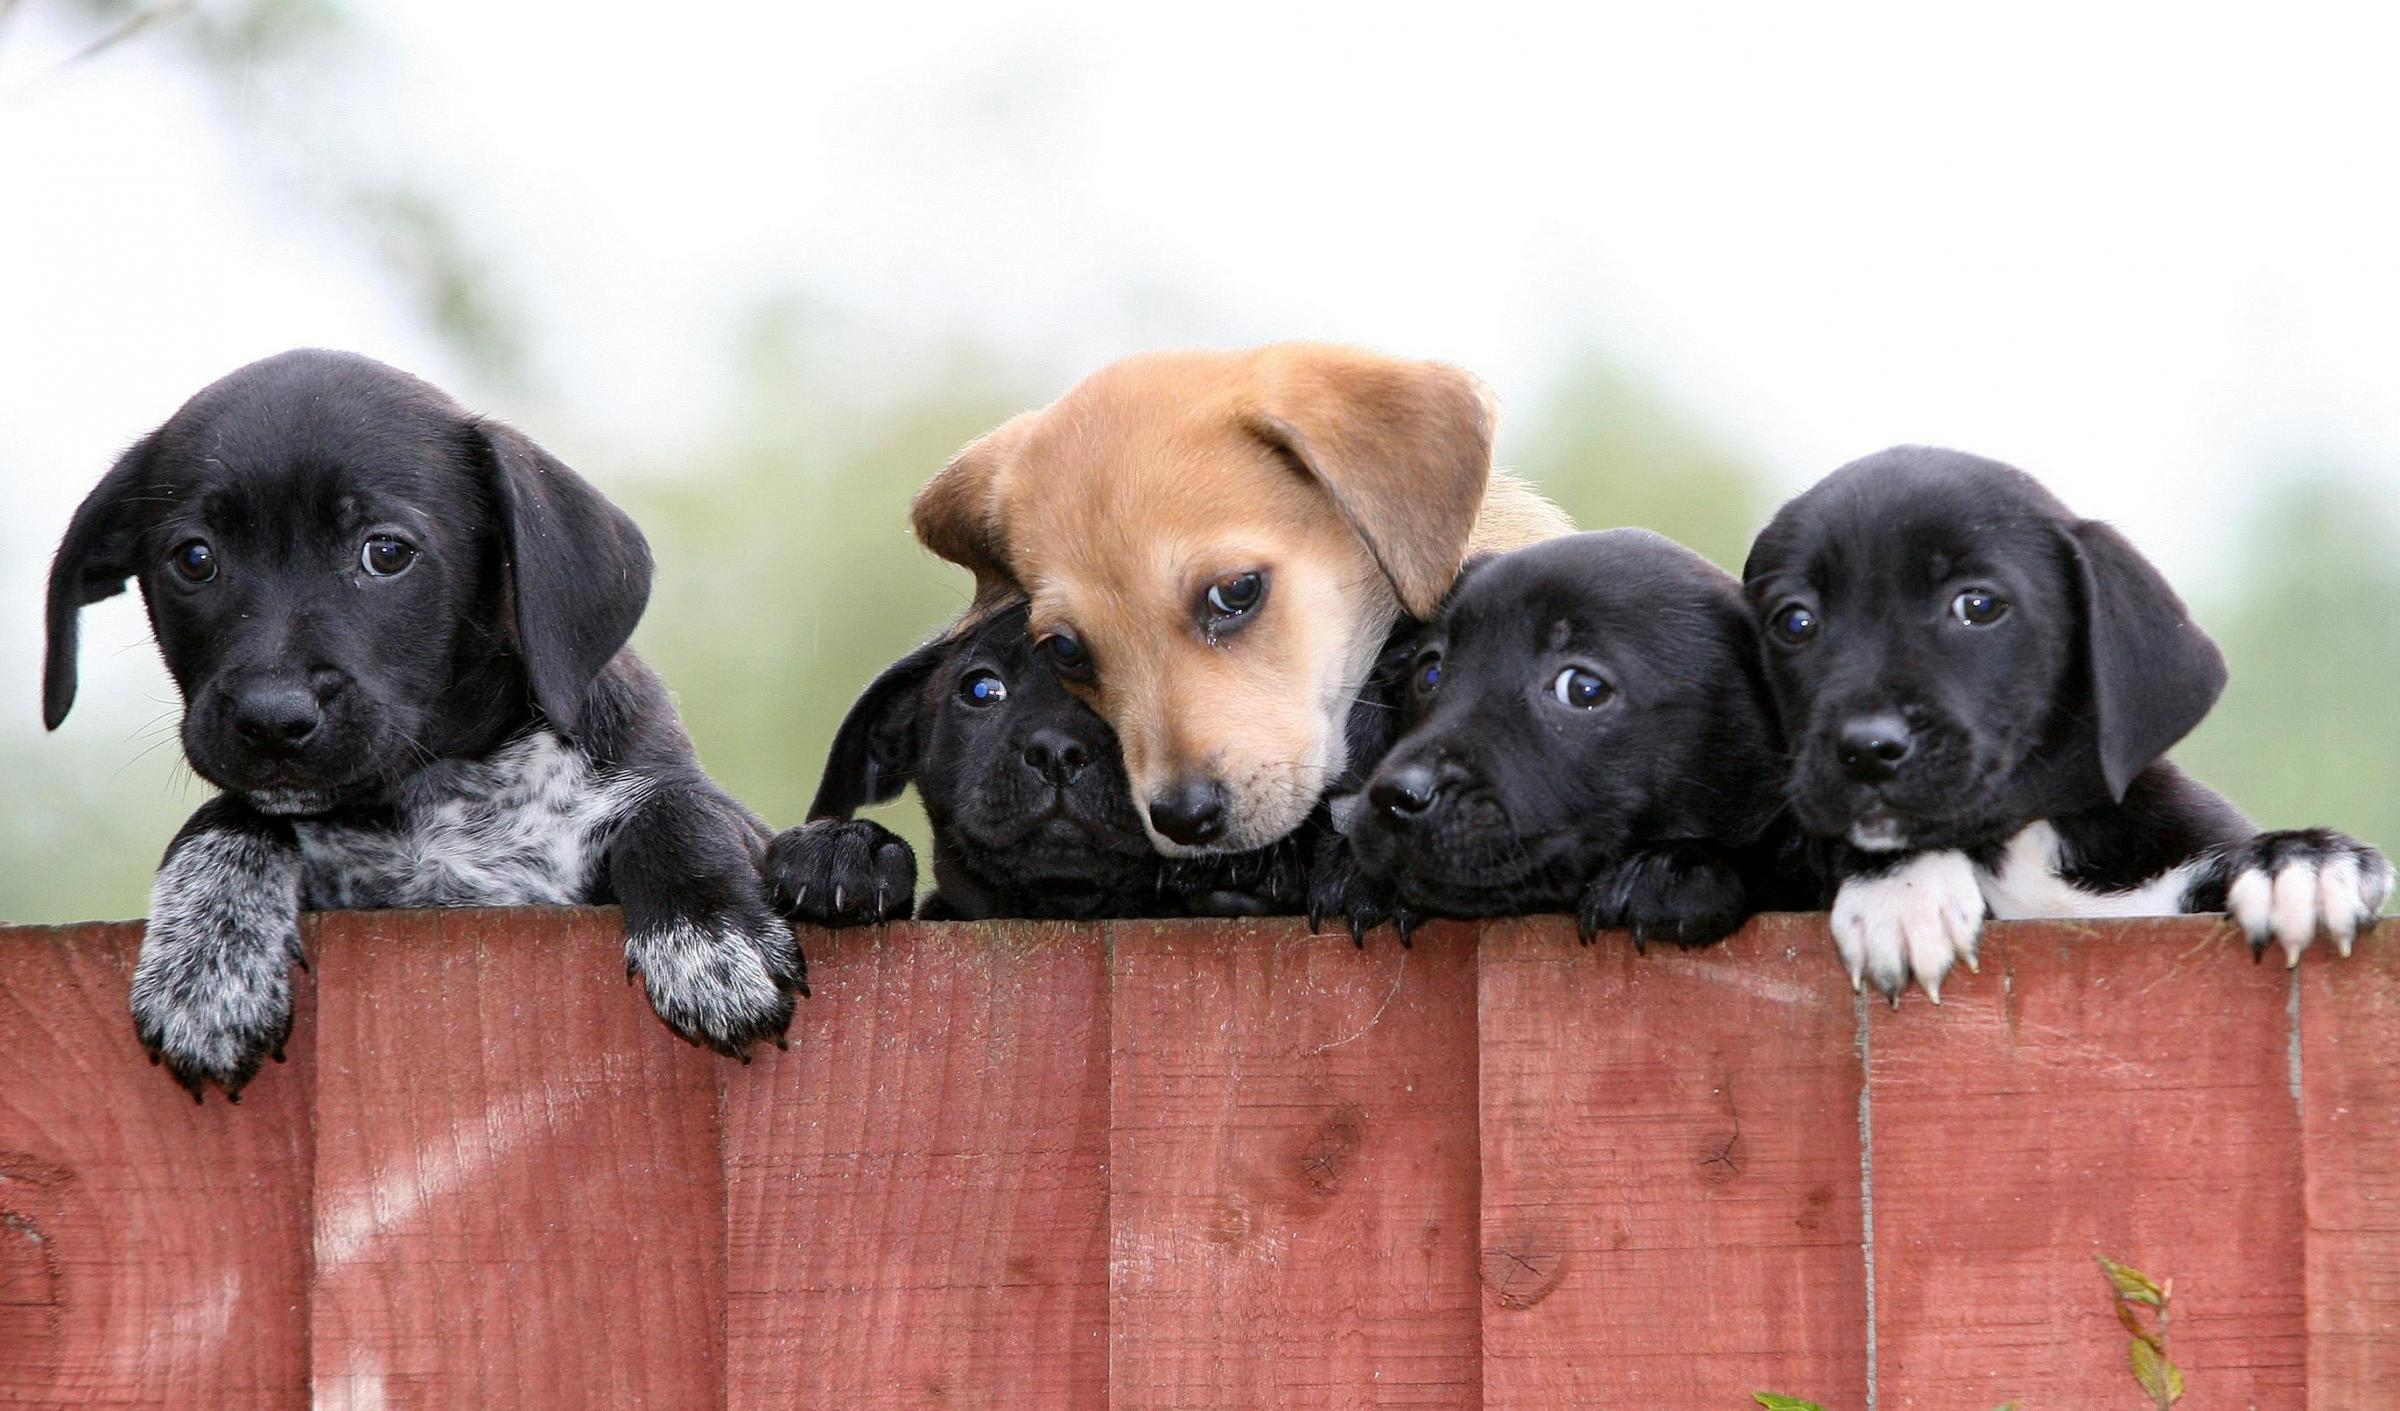 A call has gone out for tighter controls onn the selling of dogs and puppies. PICTURE: Martin Rickett/PA Wire